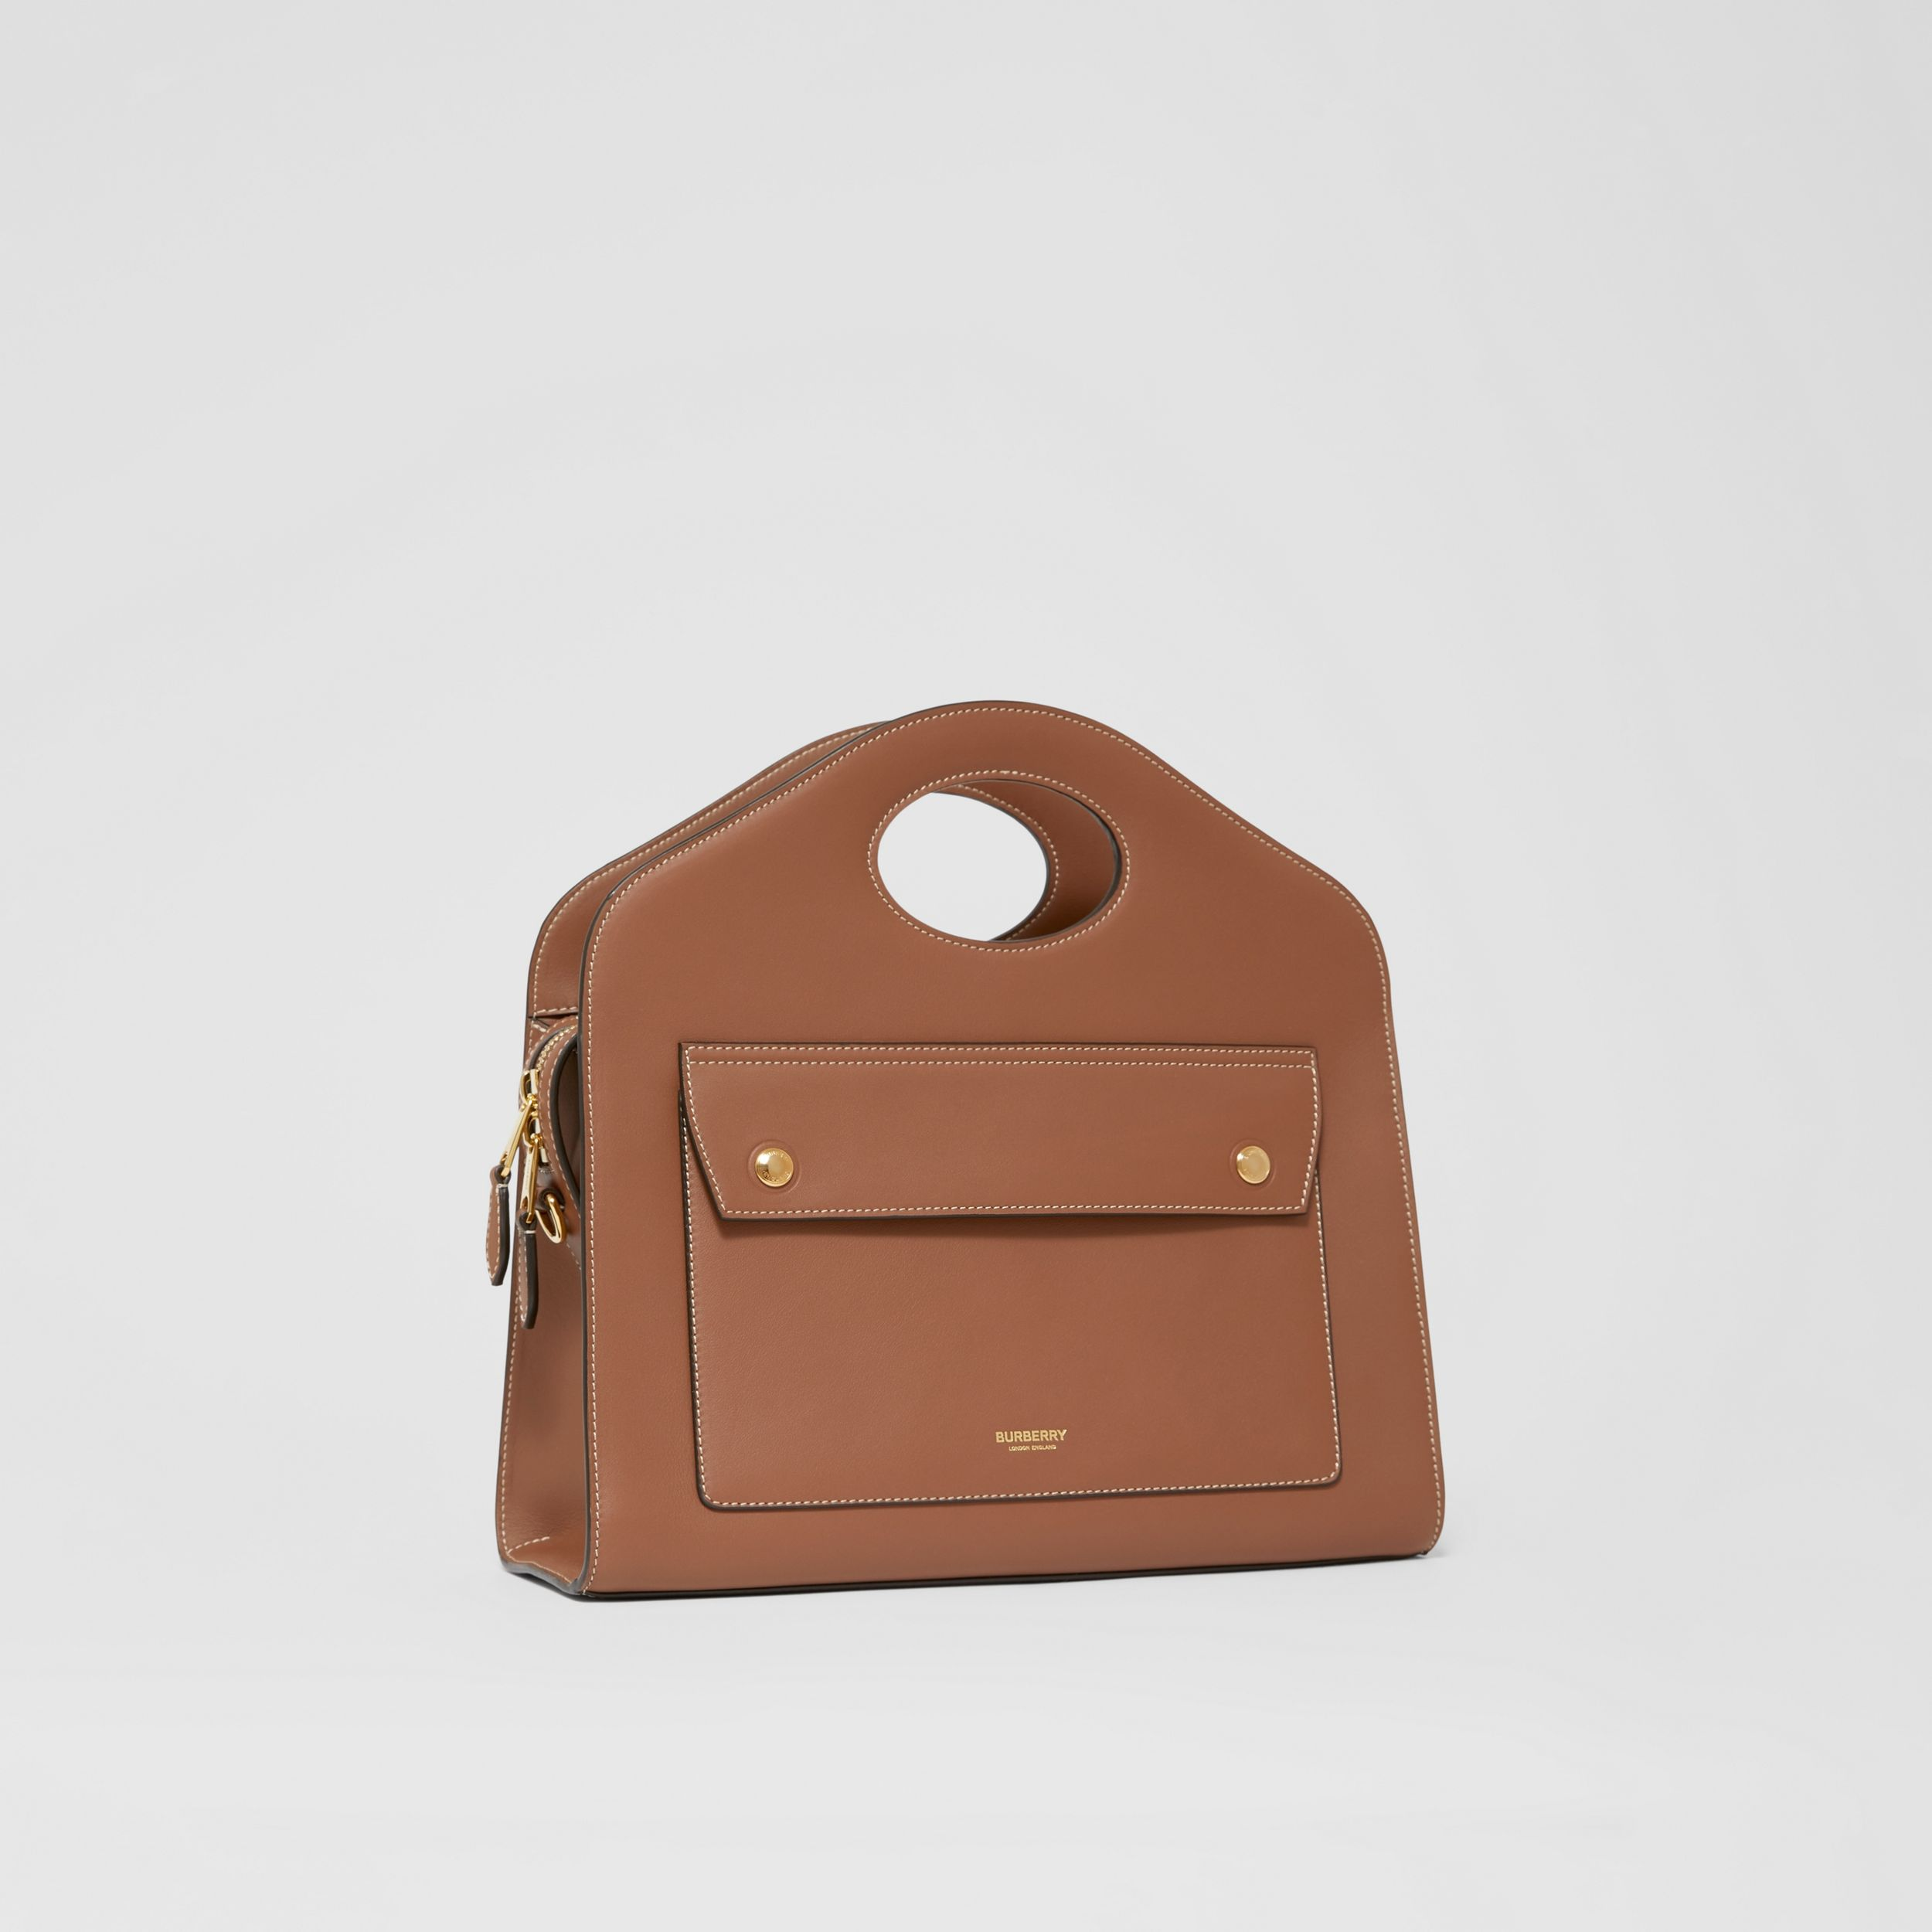 Small Topstitched Leather Pocket Tote in Malt Brown - Women | Burberry Australia - 4